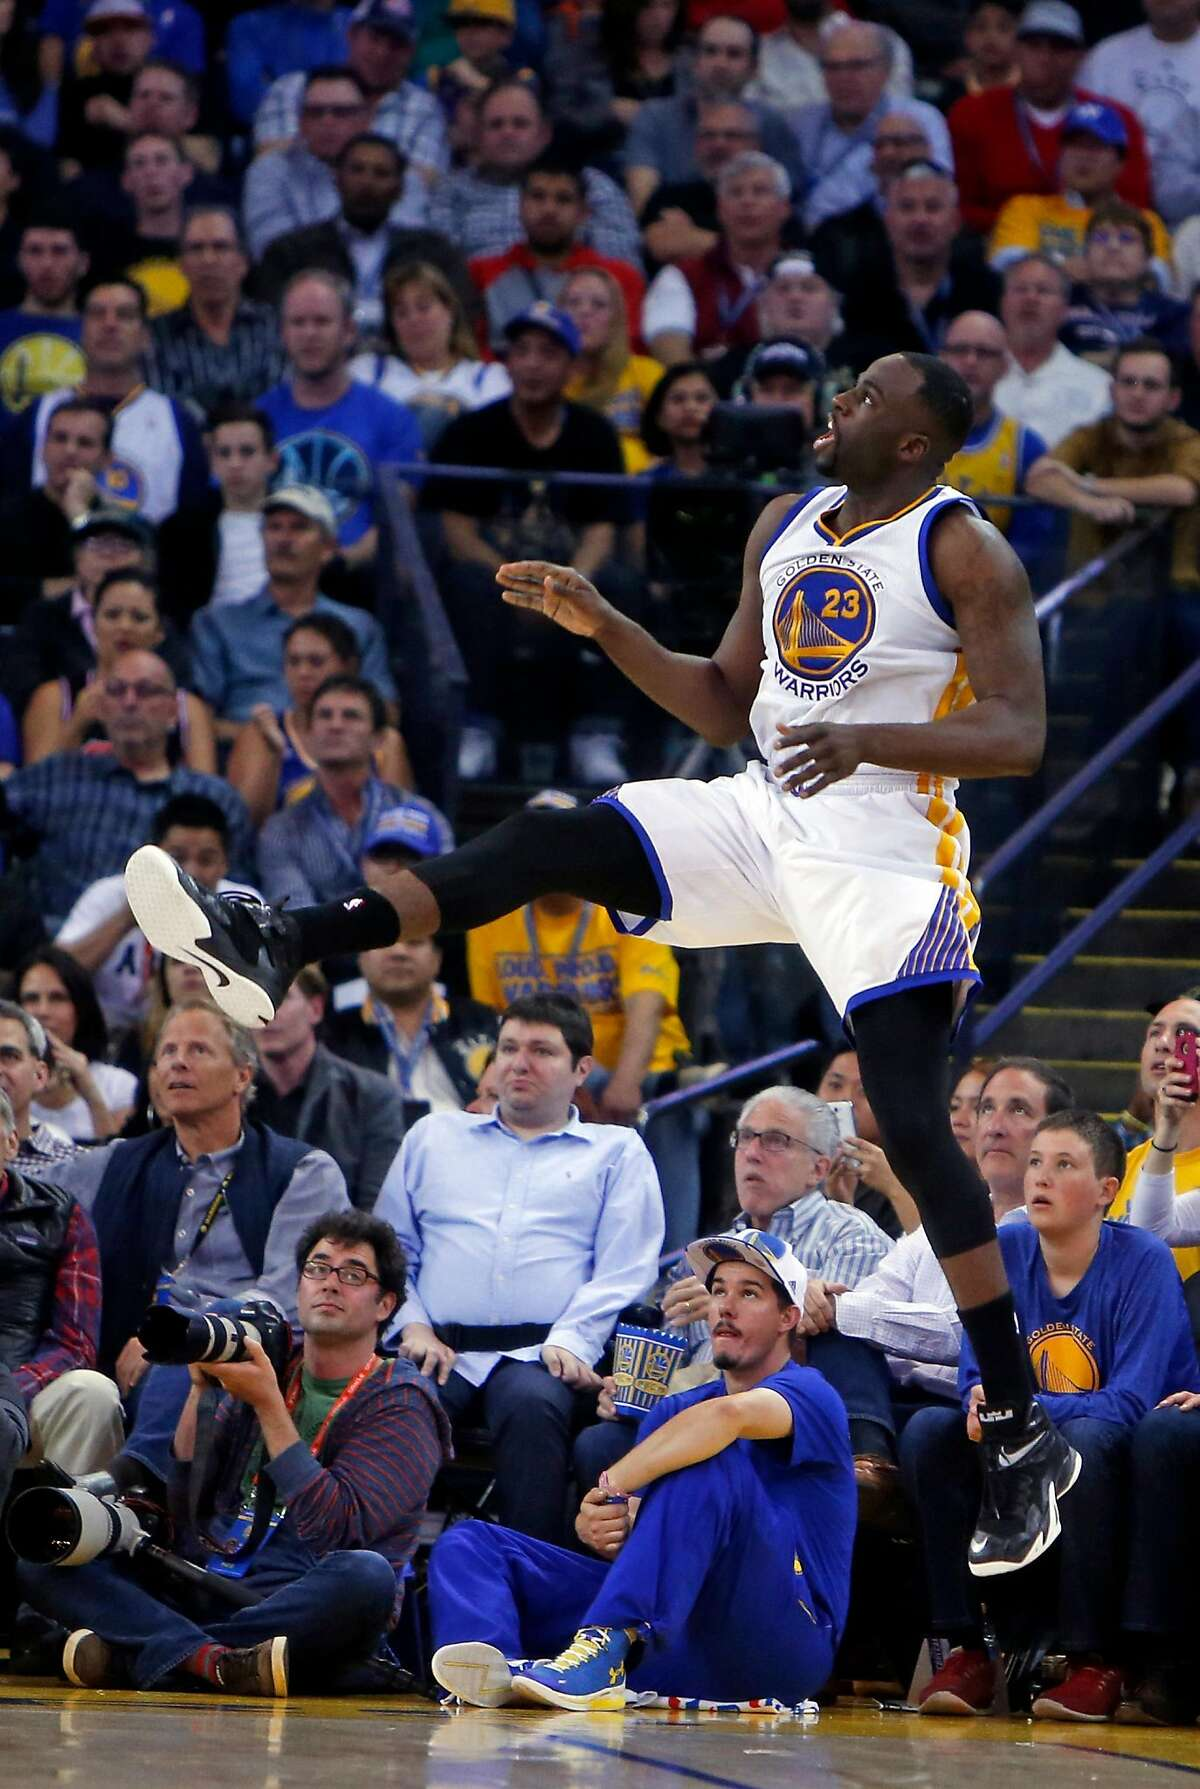 Golden State Warriors' Draymond Green makes an off balance 3-pointer to beat the shot clock in 2nd quarter against Atlanta Hawks during NBA game at Oracle Arena in Oakland, Calif., on Wednesday, March 18, 2015.